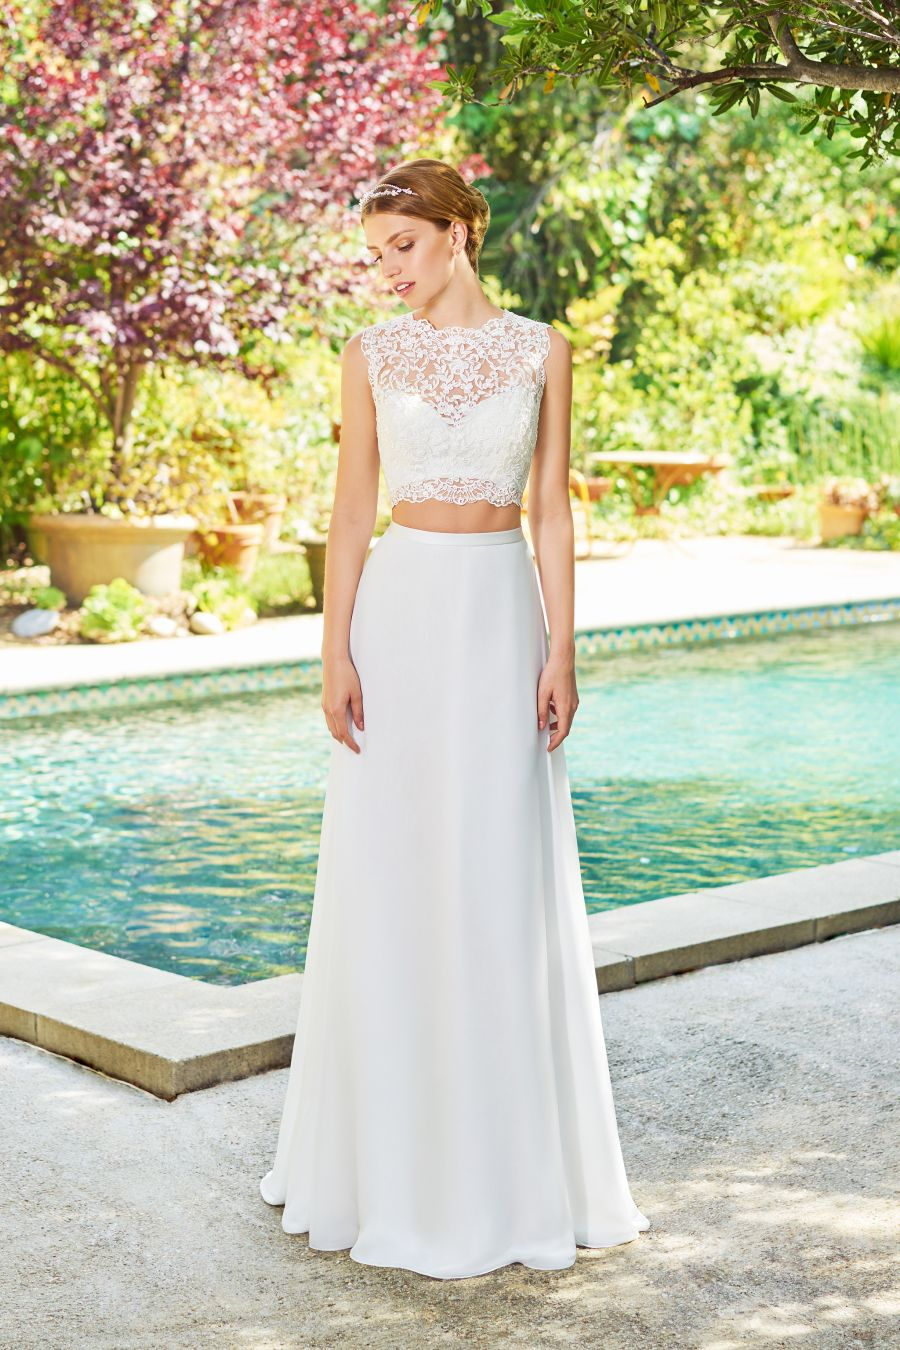 Boat neck lace wedding dress october 2018 The One Trend in Wedding Gowns That Will Leave All of Your Guests